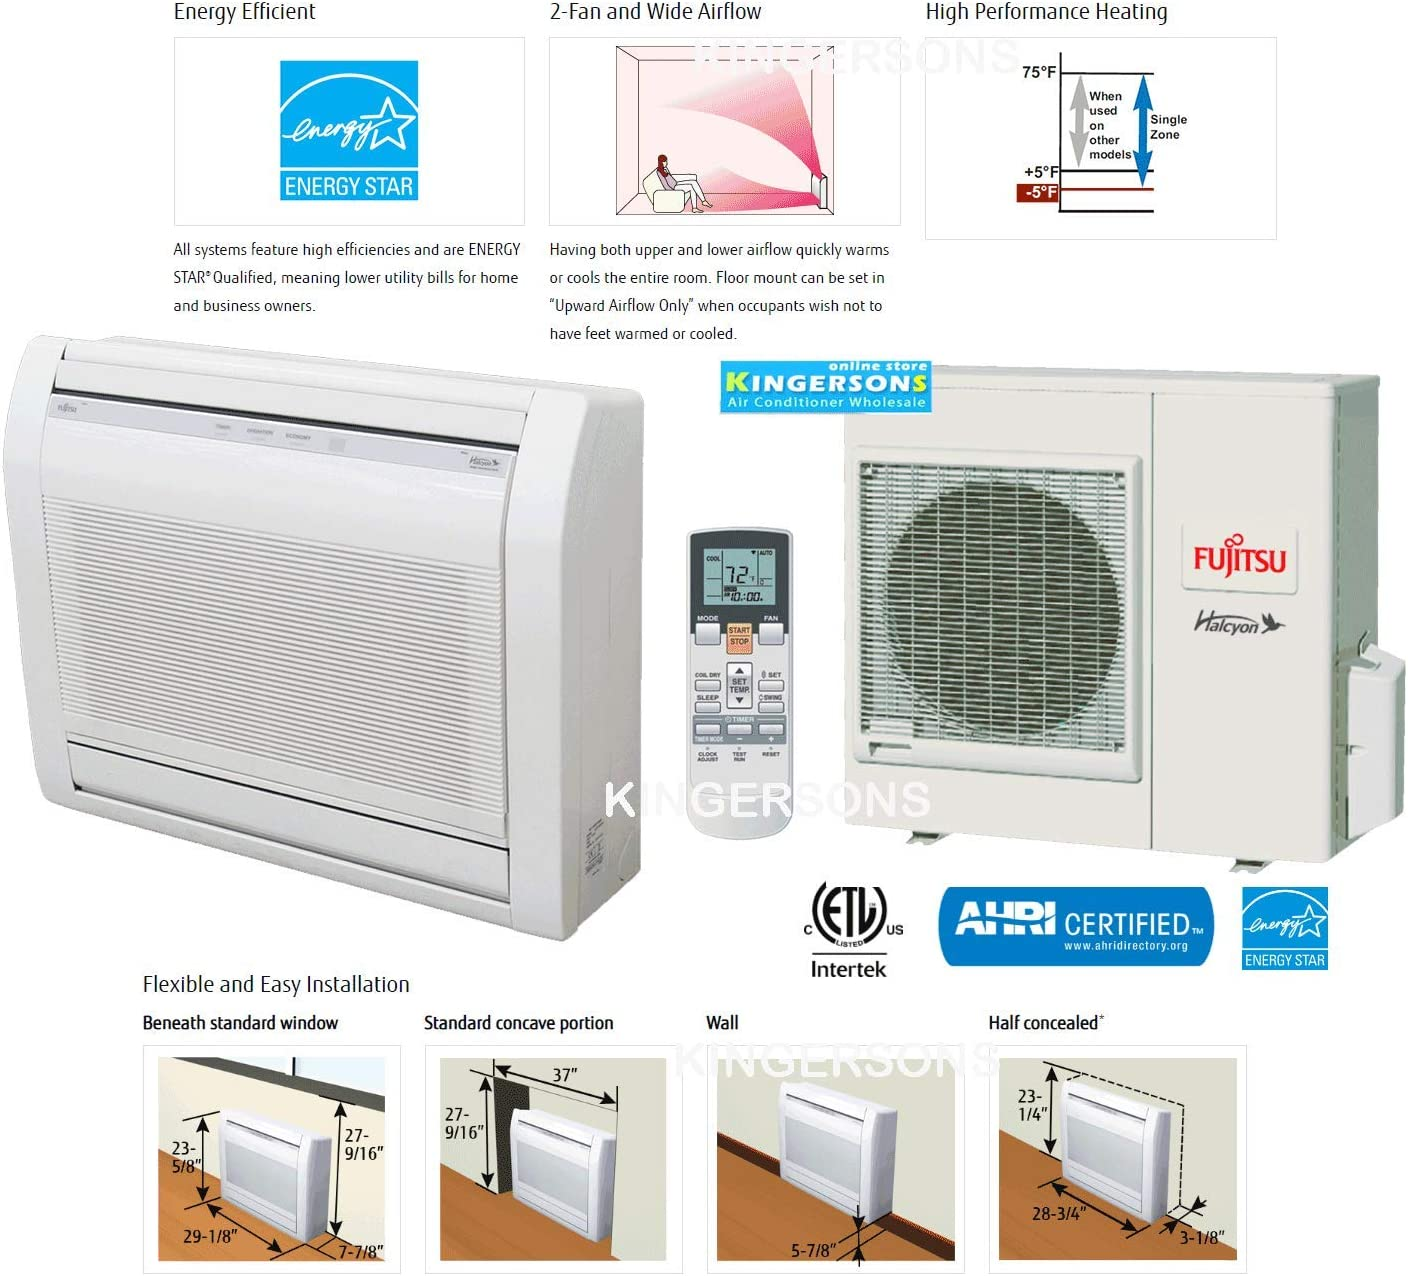 Amazon Com Fujitsu 3 4 Ton 9000 Btu Cooling Heating Ductless Split Ac Floor Mount Air Conditioning System 26 Seer Energy Star Home Kitchen